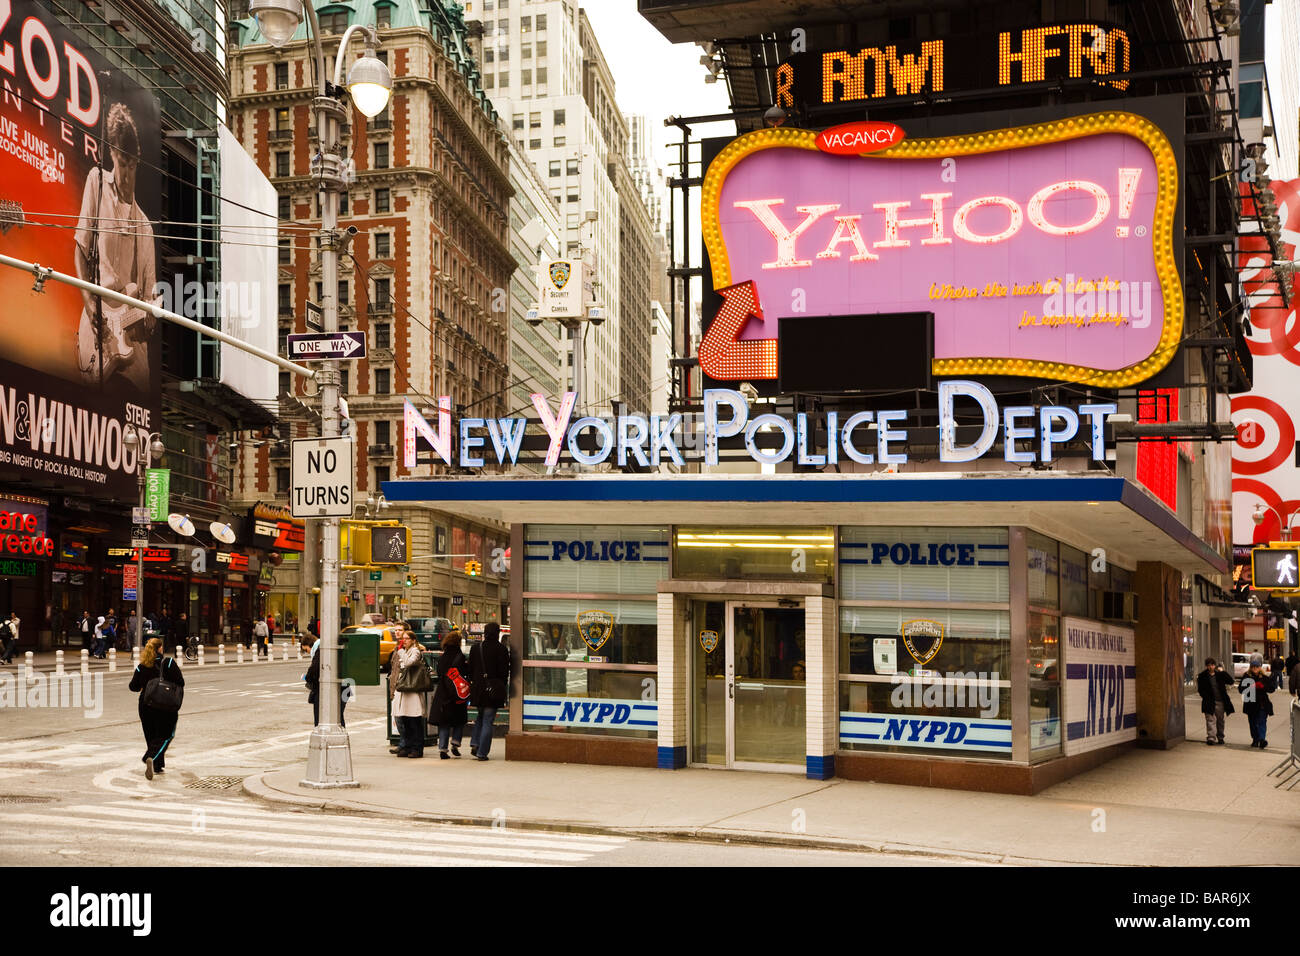 Nypd new york police department office in times square at broadway and 7th avenue new york city usa america